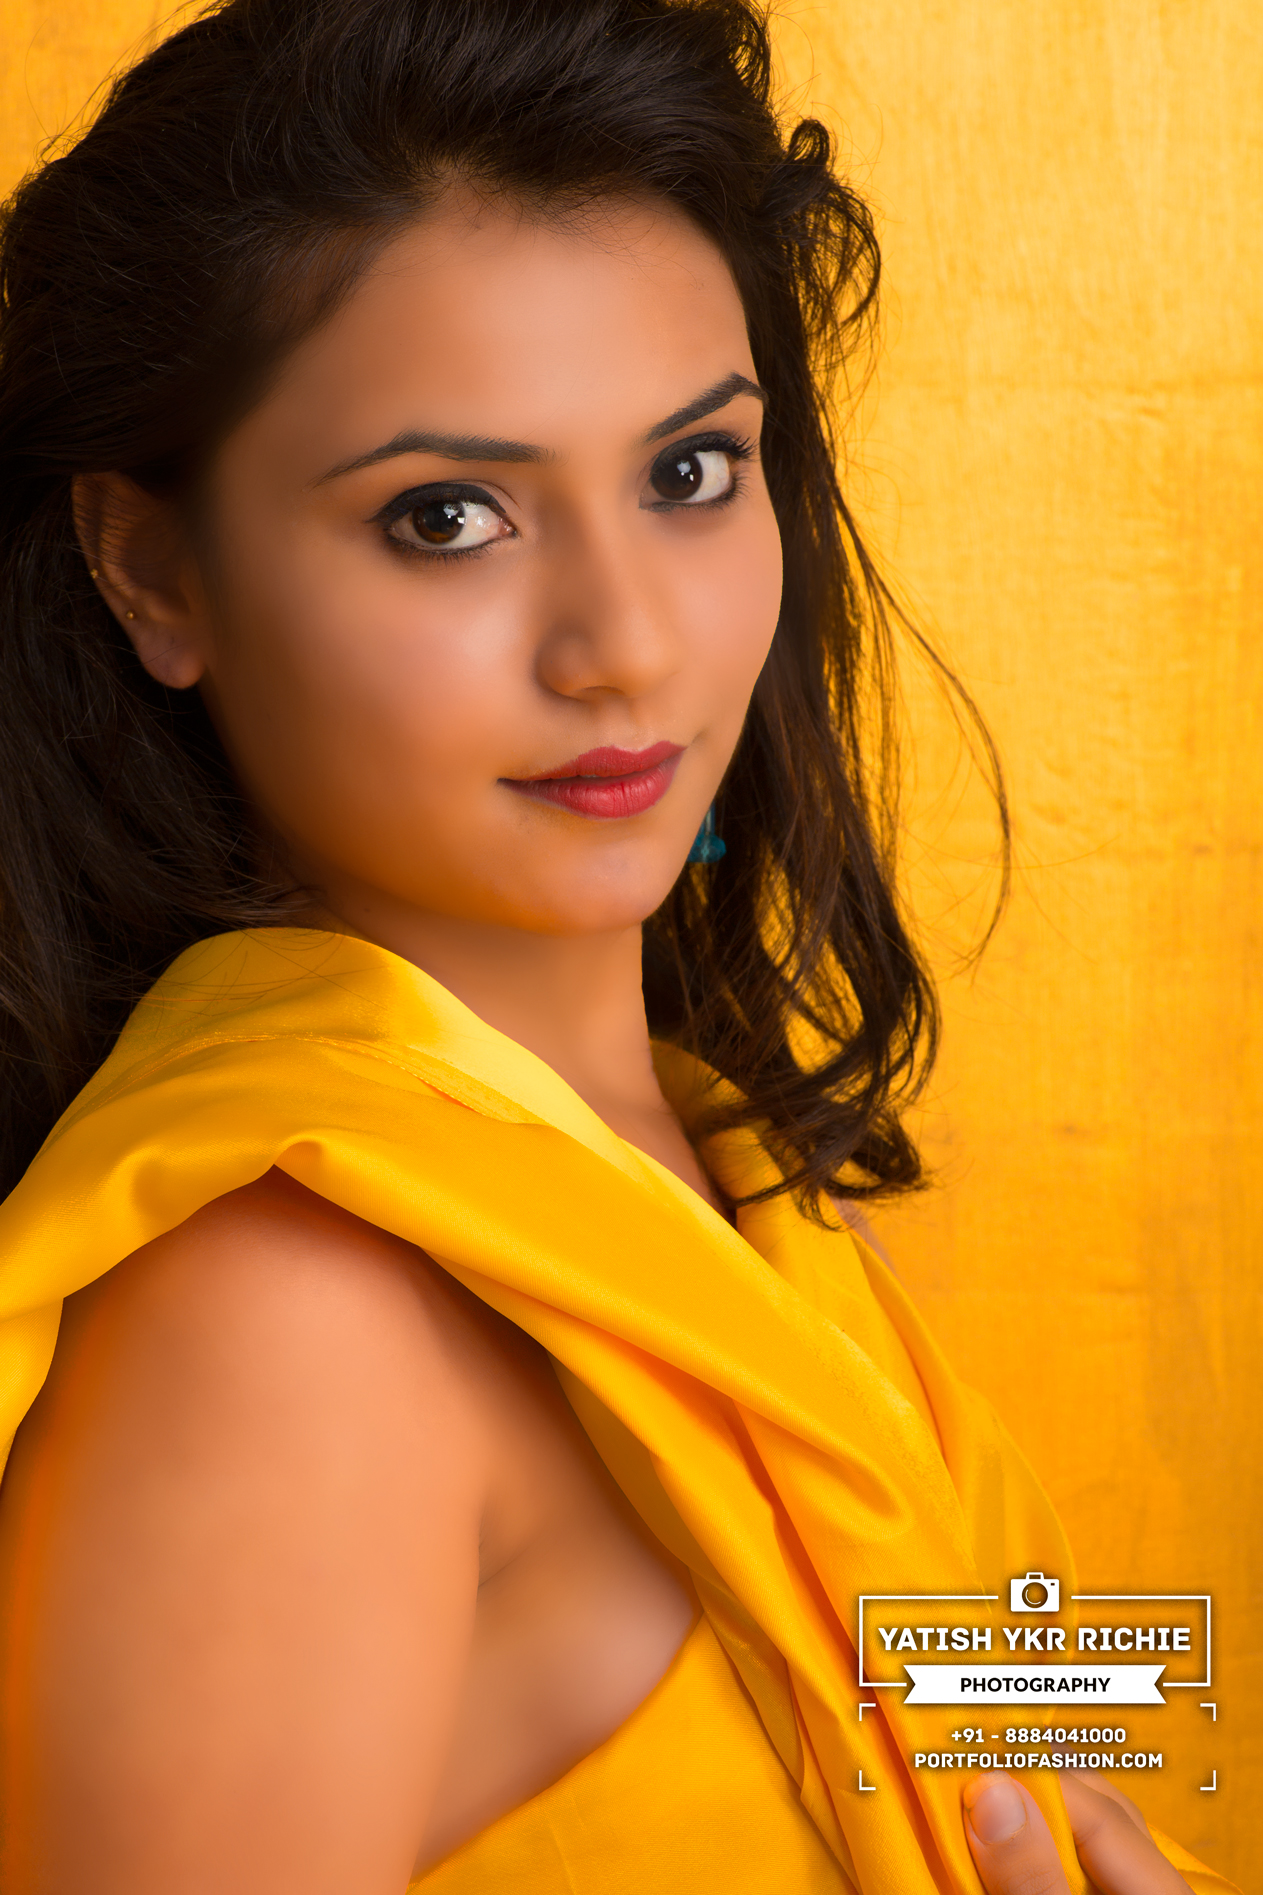 Stunning model, Bangalore model, Best model in Bangalore, pretty model, Modeling photography, Fashion photography